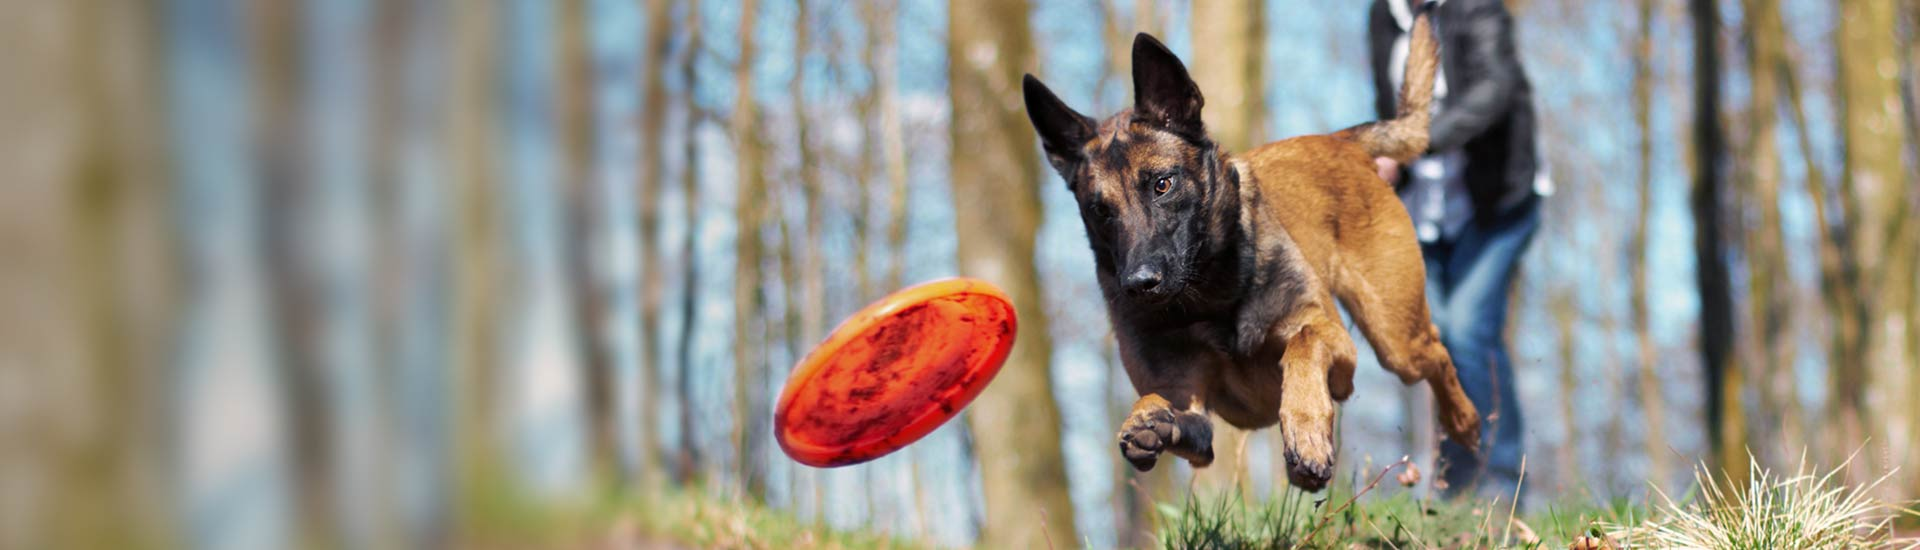 Dog chasing a frisbee